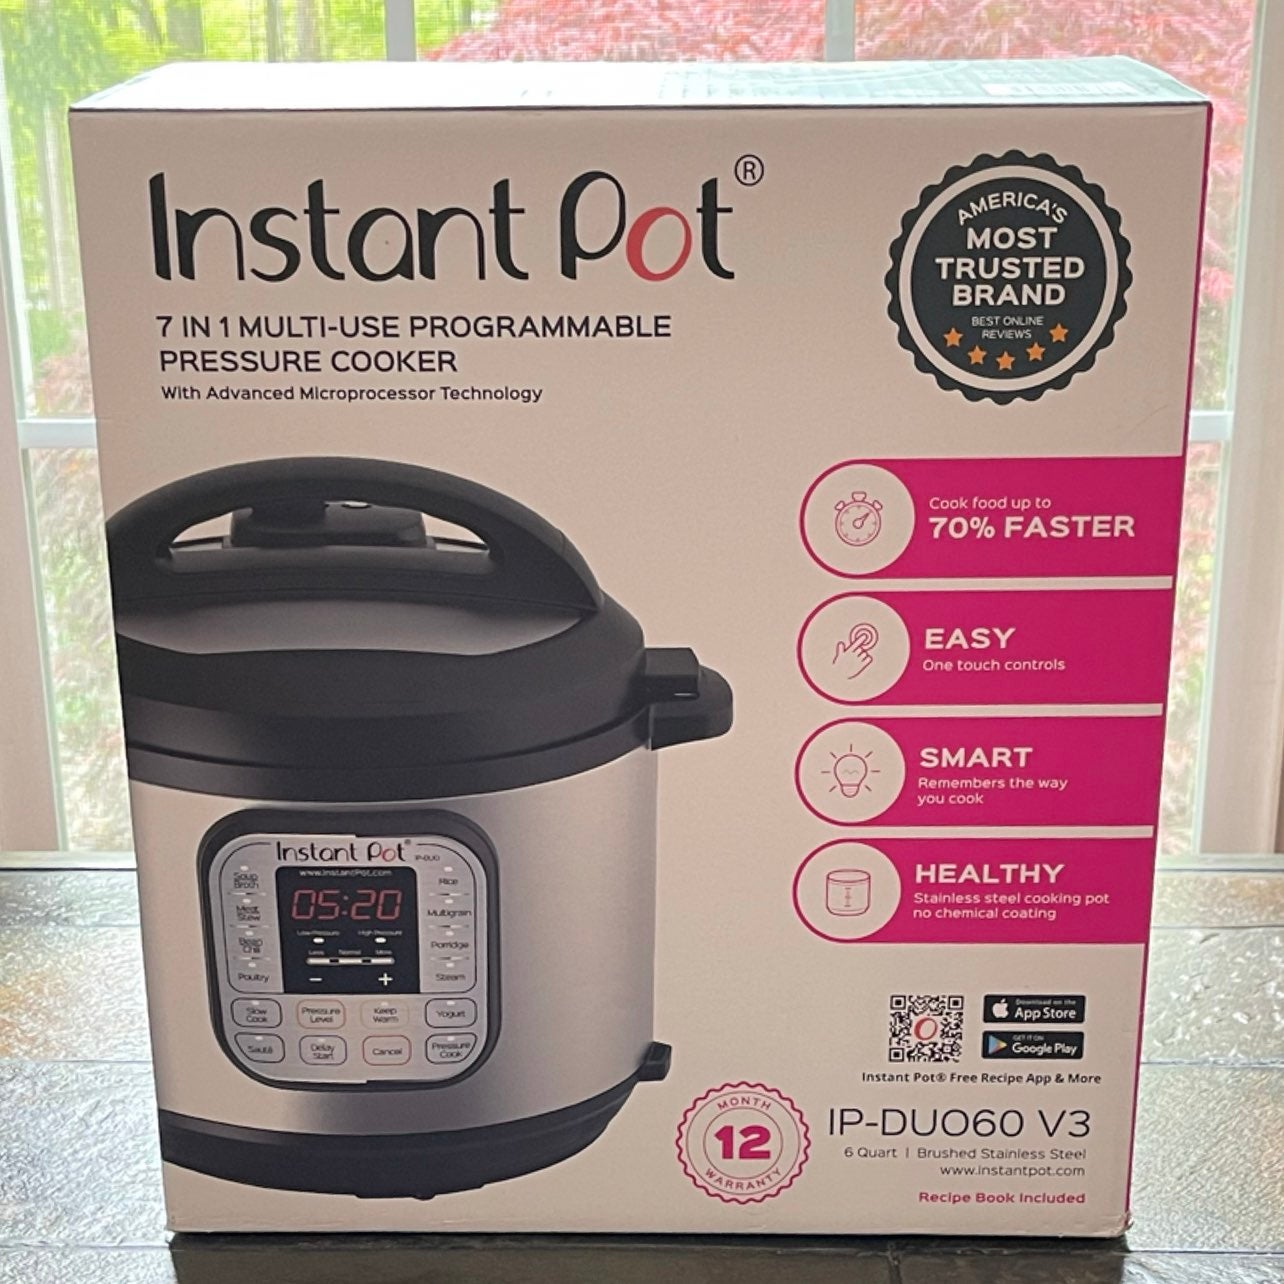 Instant Pot 7 in 1 Multi-Use 6 Qt Cooker